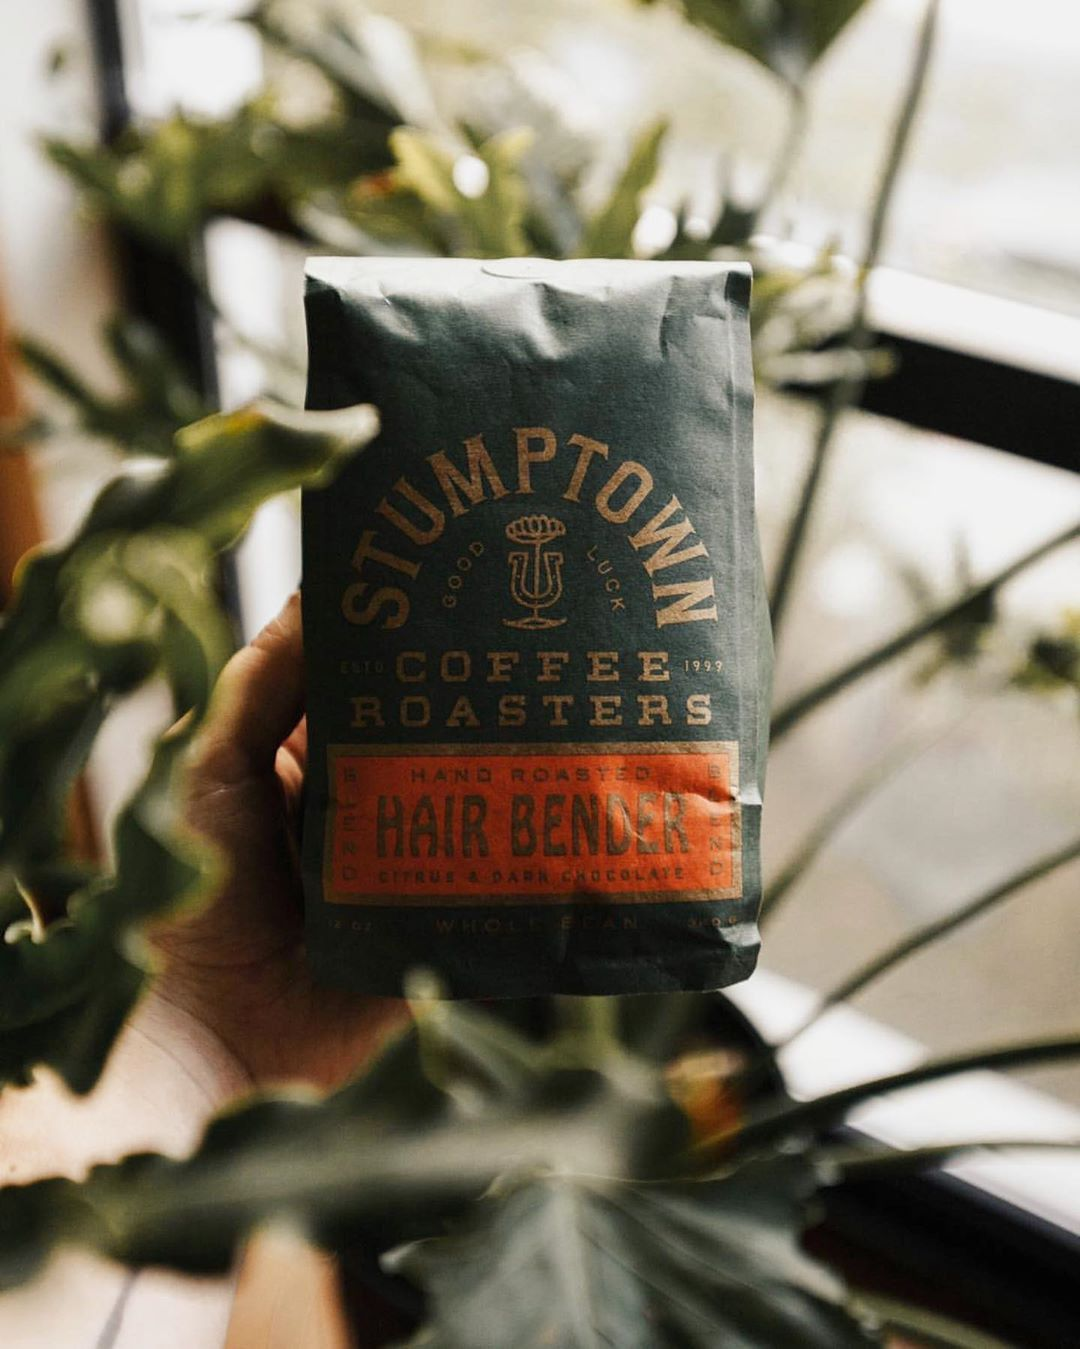 Stumptown Coffee Roasters Hair Bender Whole Bean Coffee 12 Oz In 2020 Stumptown Coffee Stumptown Coffee Roasters Coffee